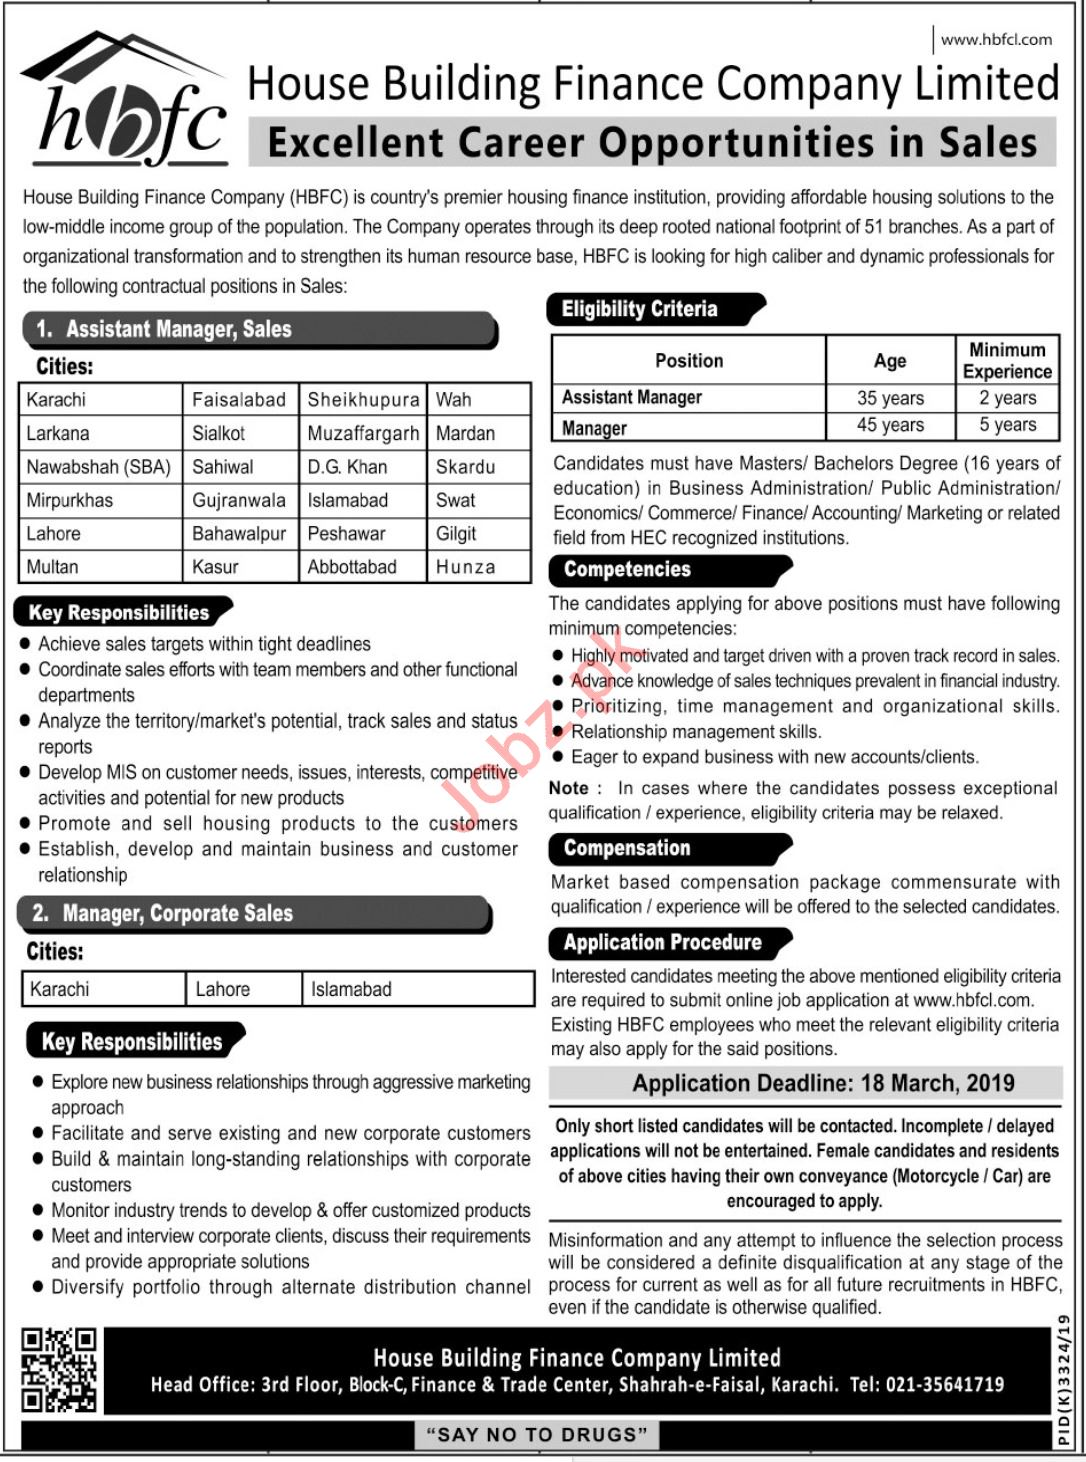 House Building Finance Company Limited HBFCL Managent Jobs